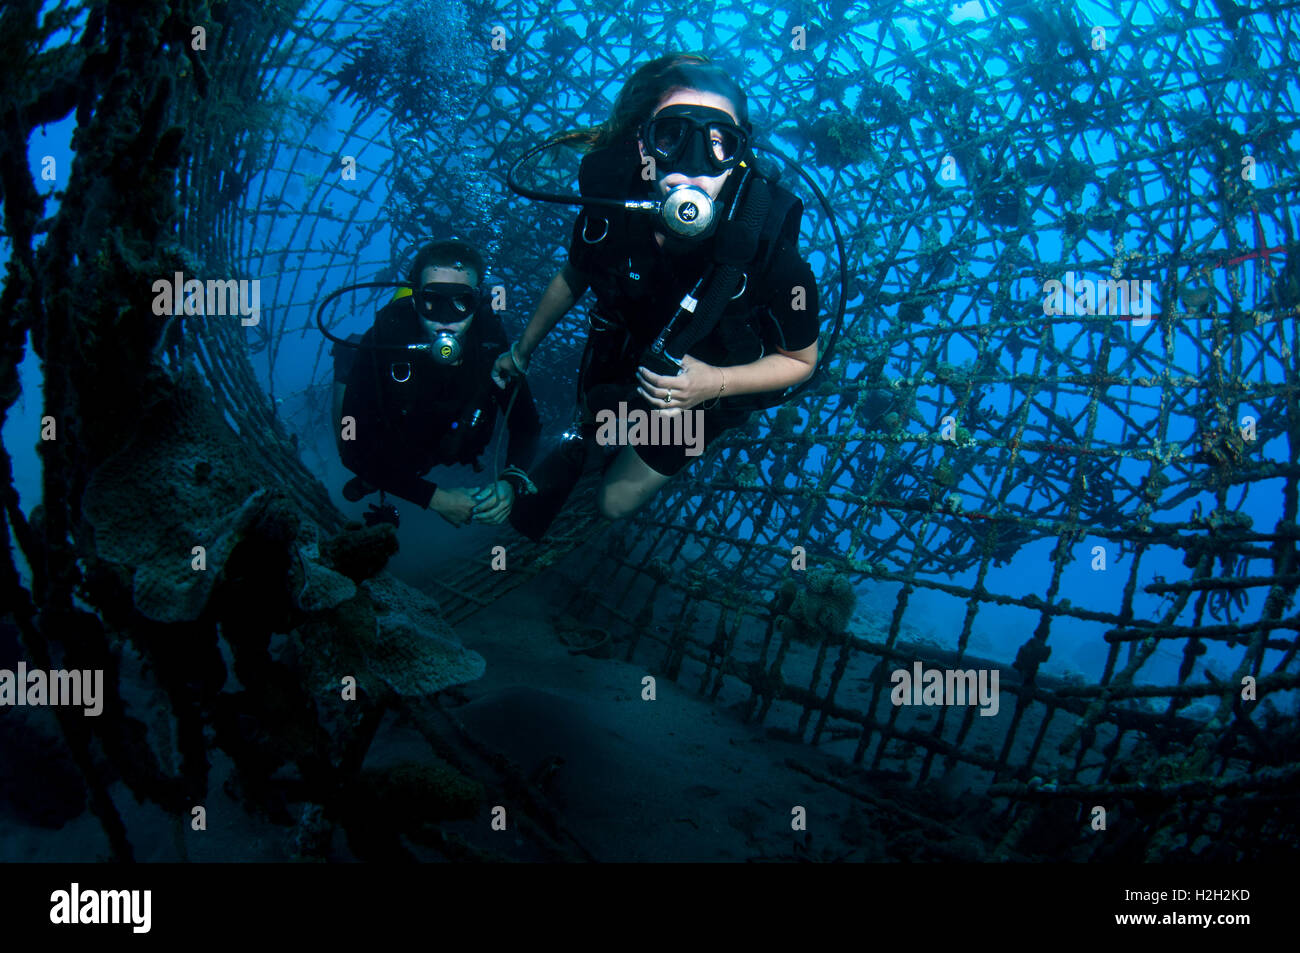 Navy Seals Stock Photos & Navy Seals Stock Images - Alamy